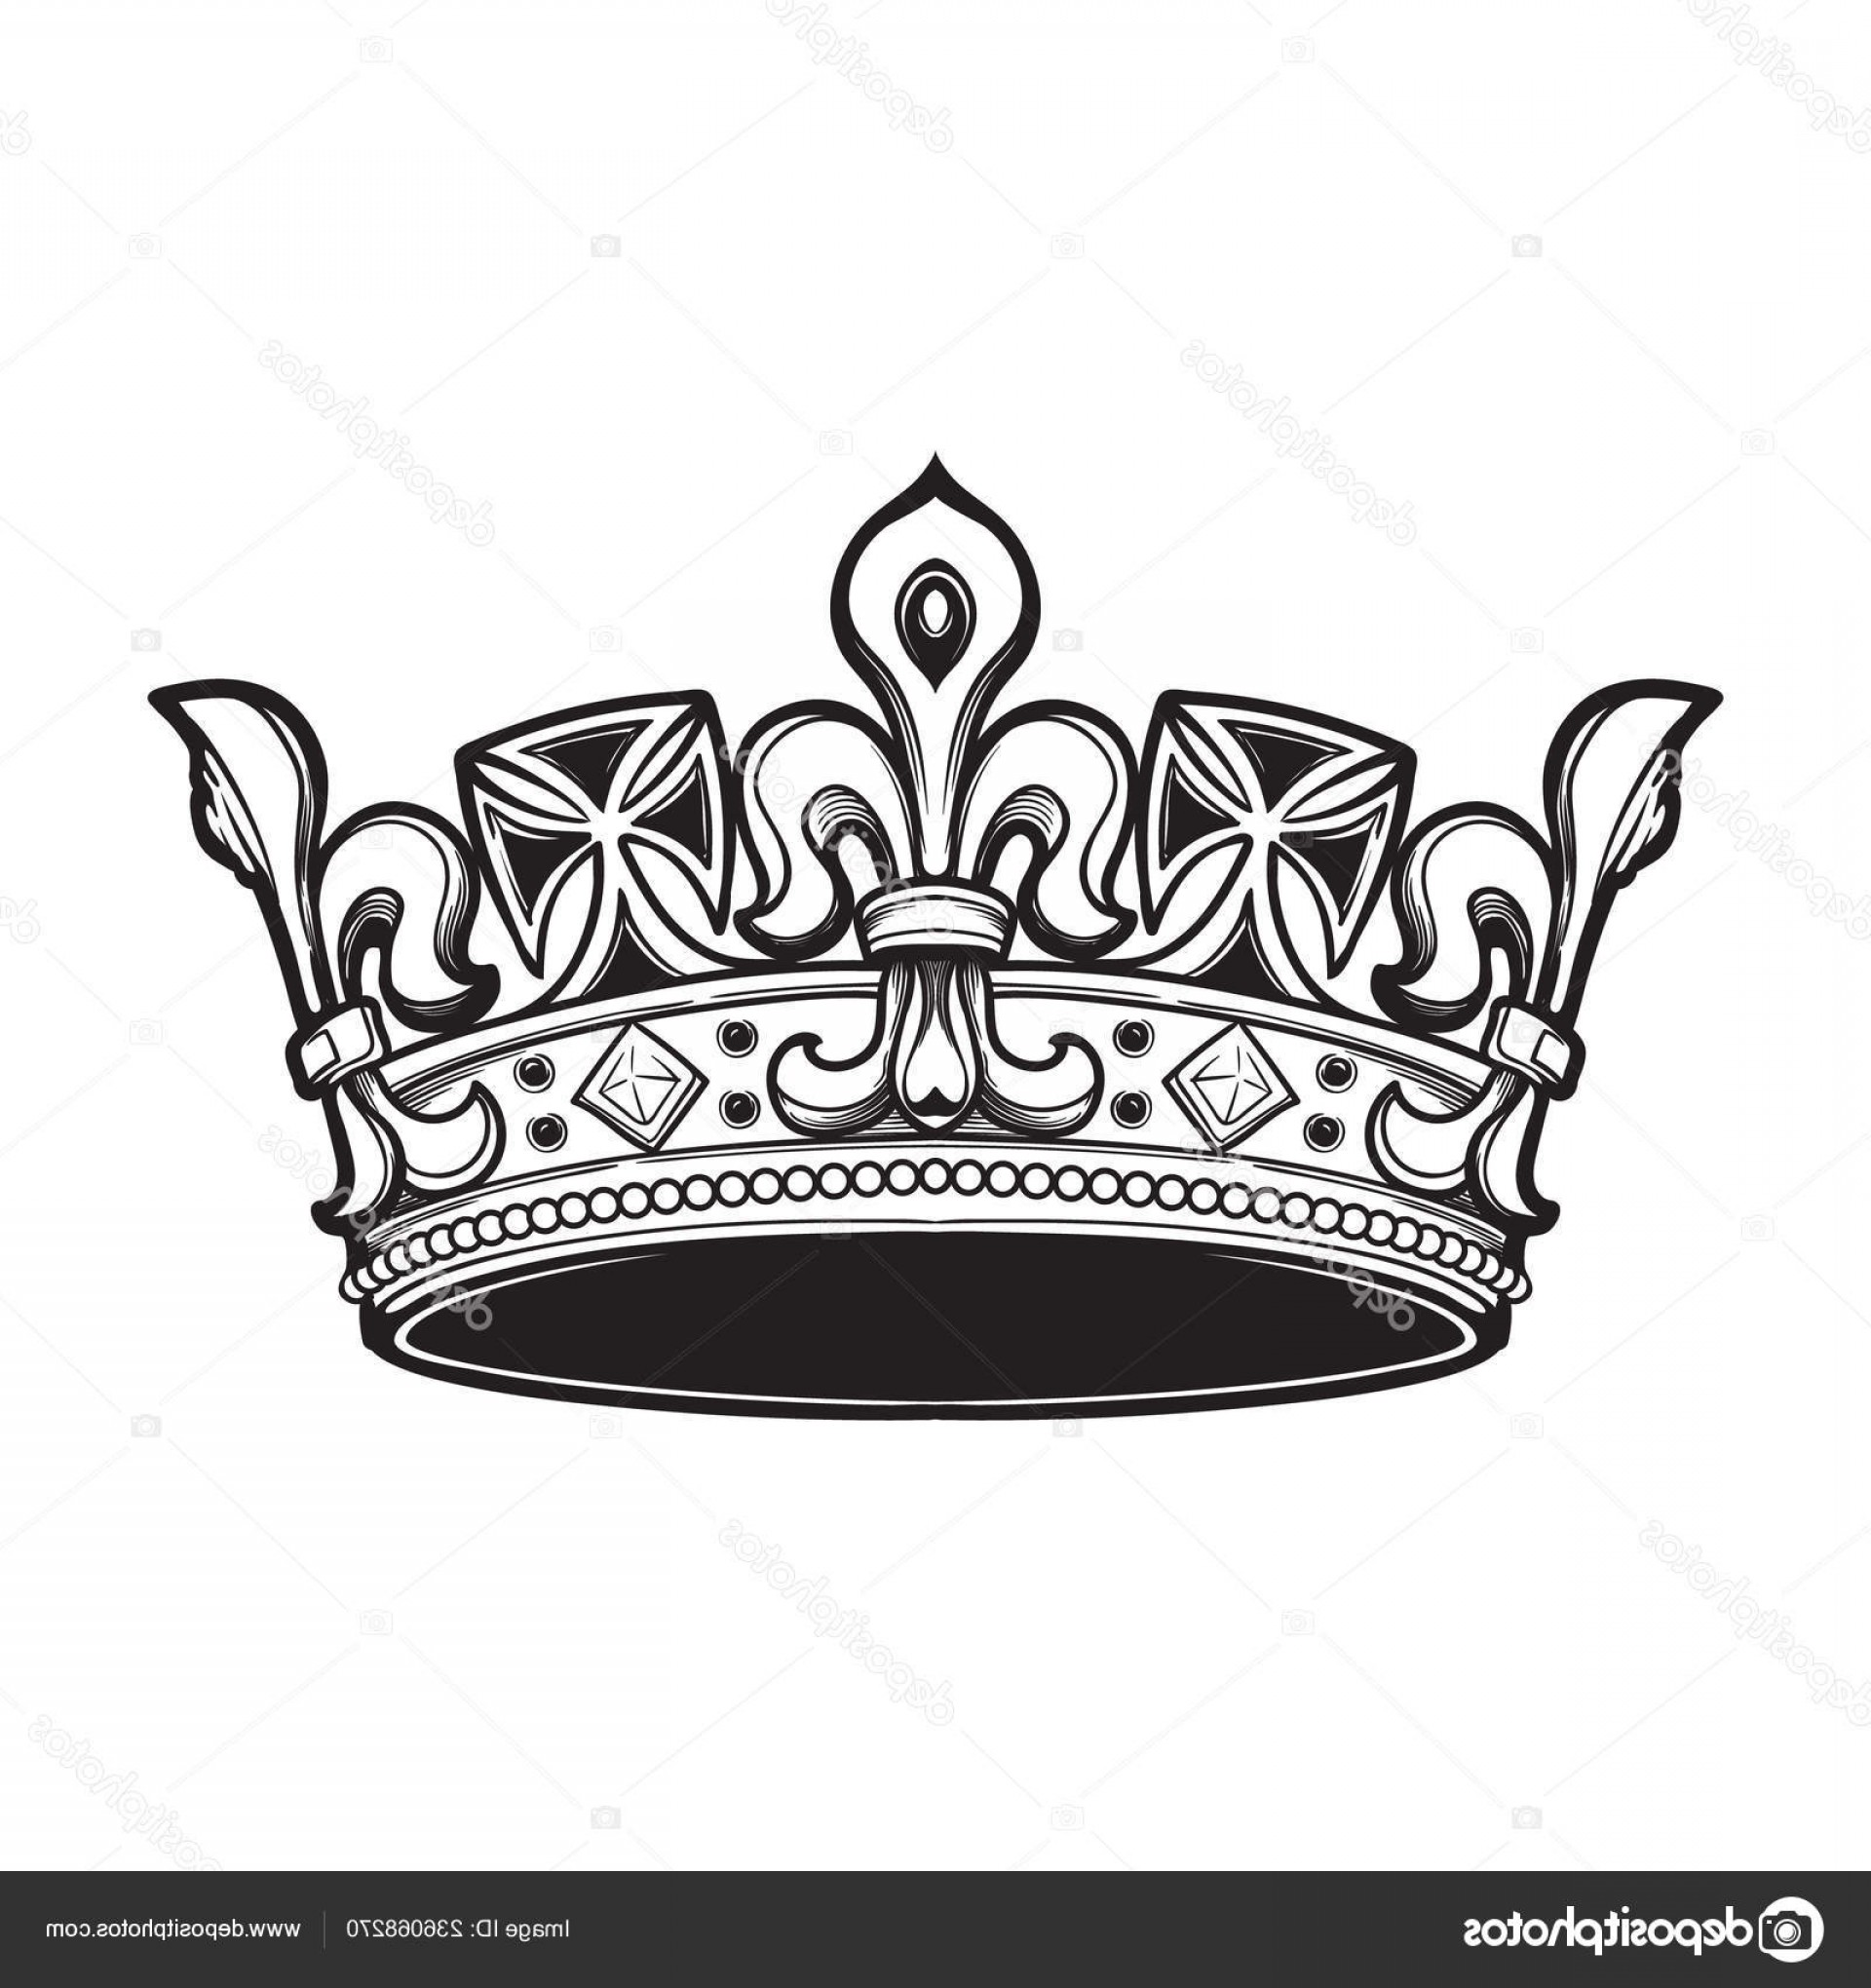 Detailed Tattoo Vector Images: Stock Illustration Filigree High Detailed Ducal Crown